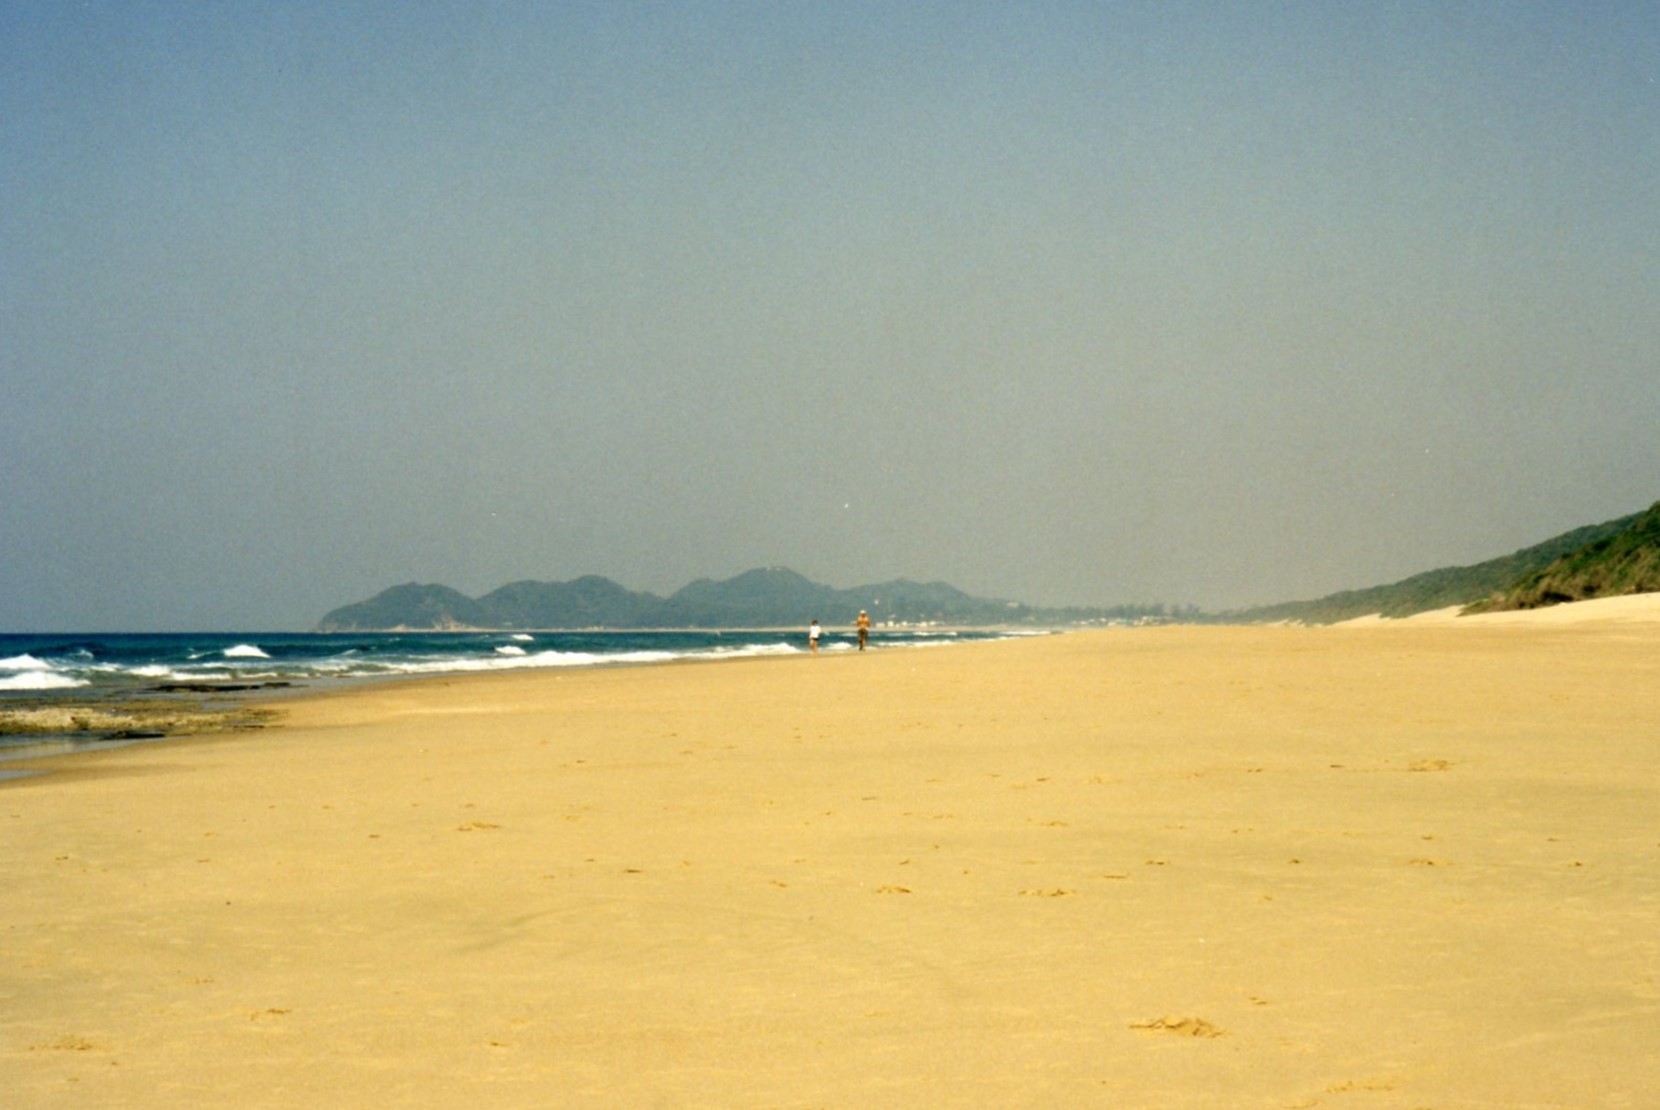 Ponta do Ouro in the distance